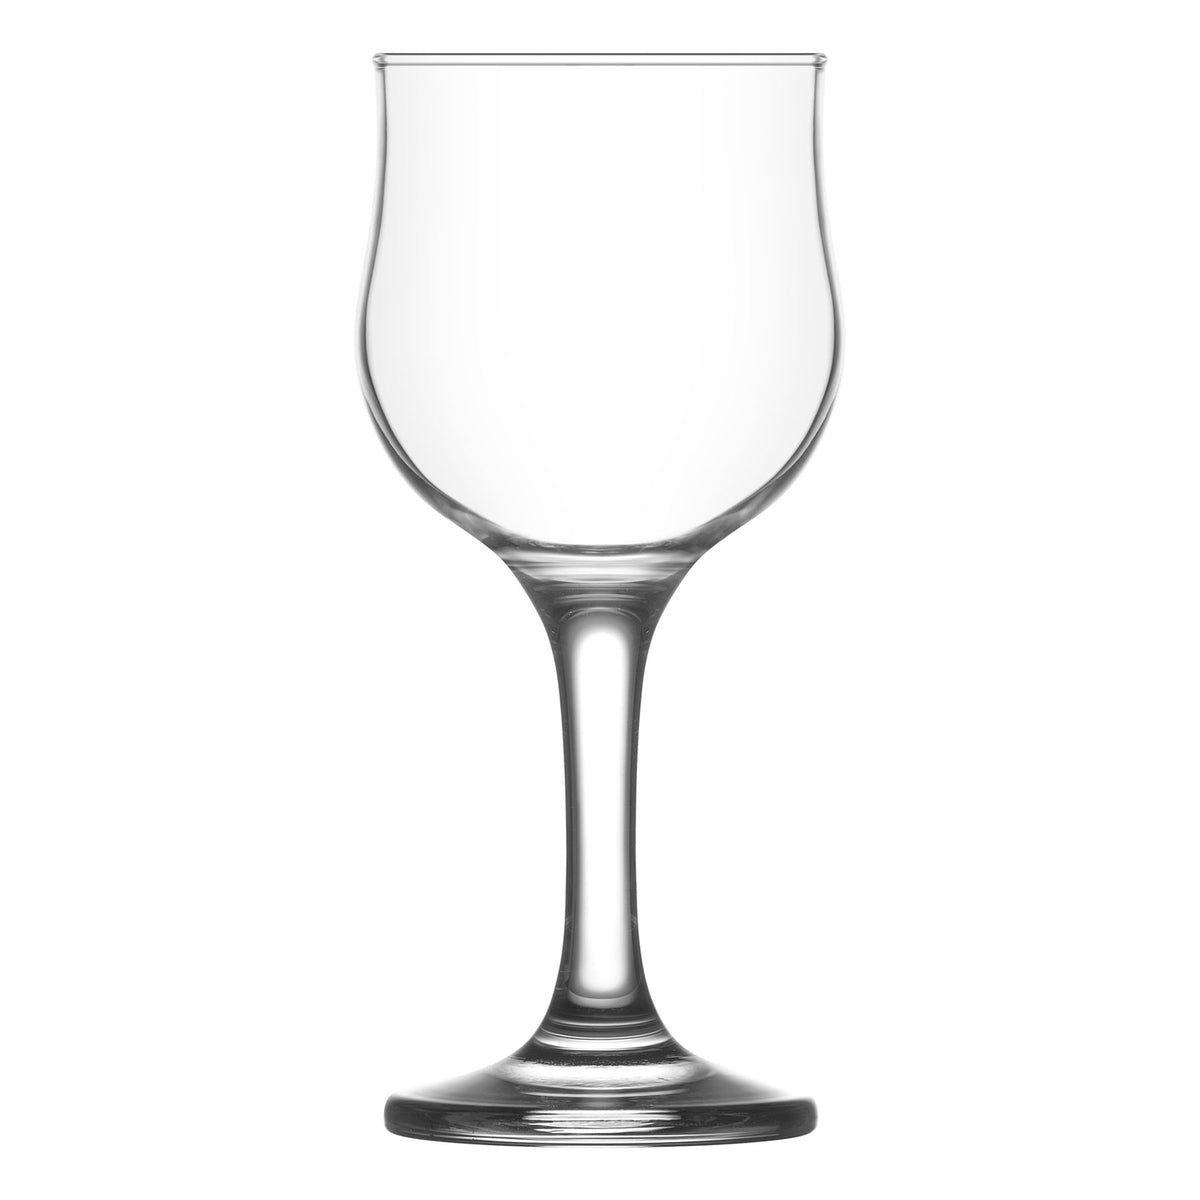 LAV Nevakar Small Chalice Wine Glass - 200ml